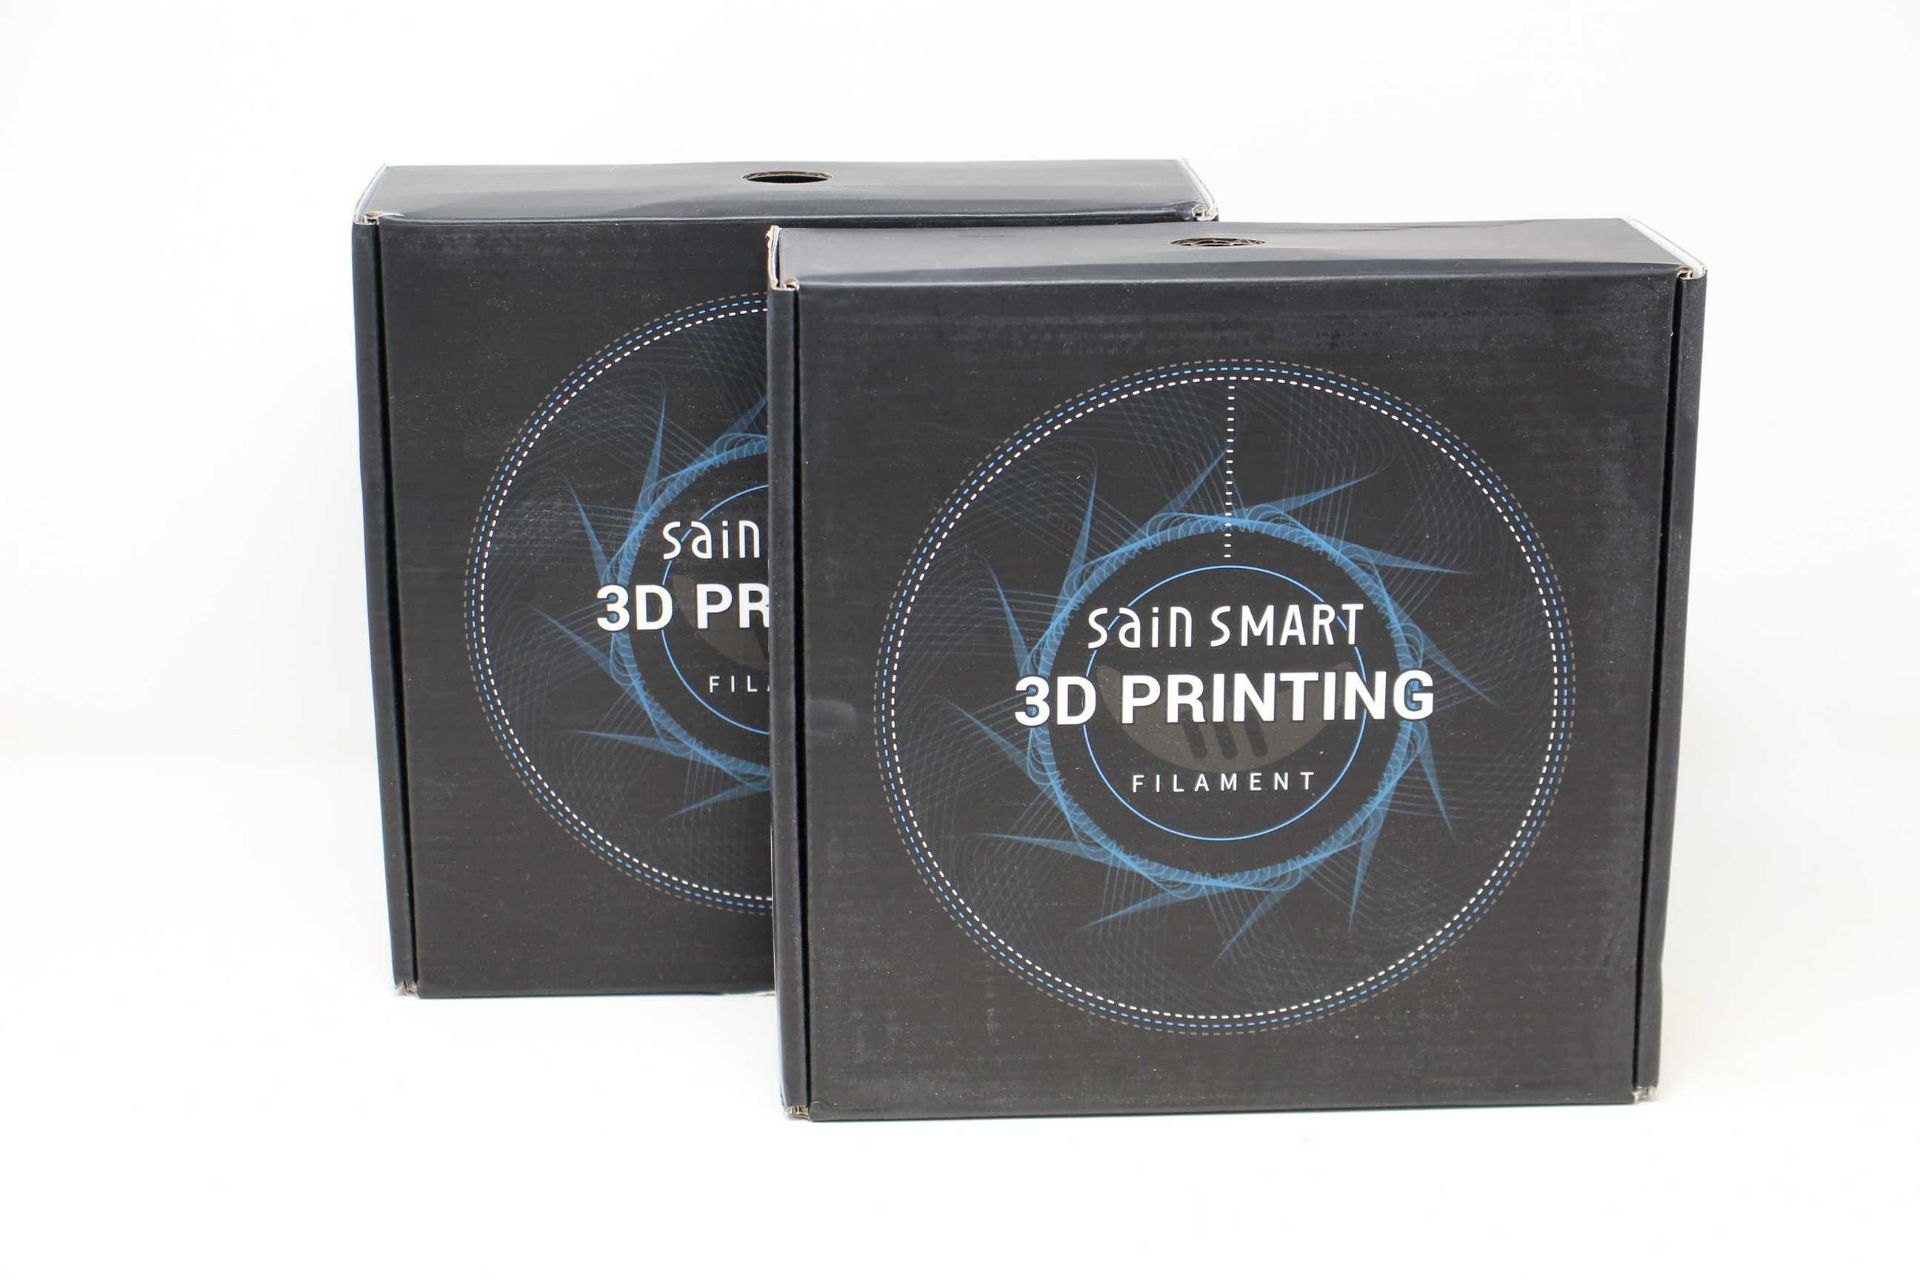 Two as new boxes of SainSmart Clear Flexible TPU 3D Printing Filament (1.75 mm, 0.8 kg) (SKU: 101-